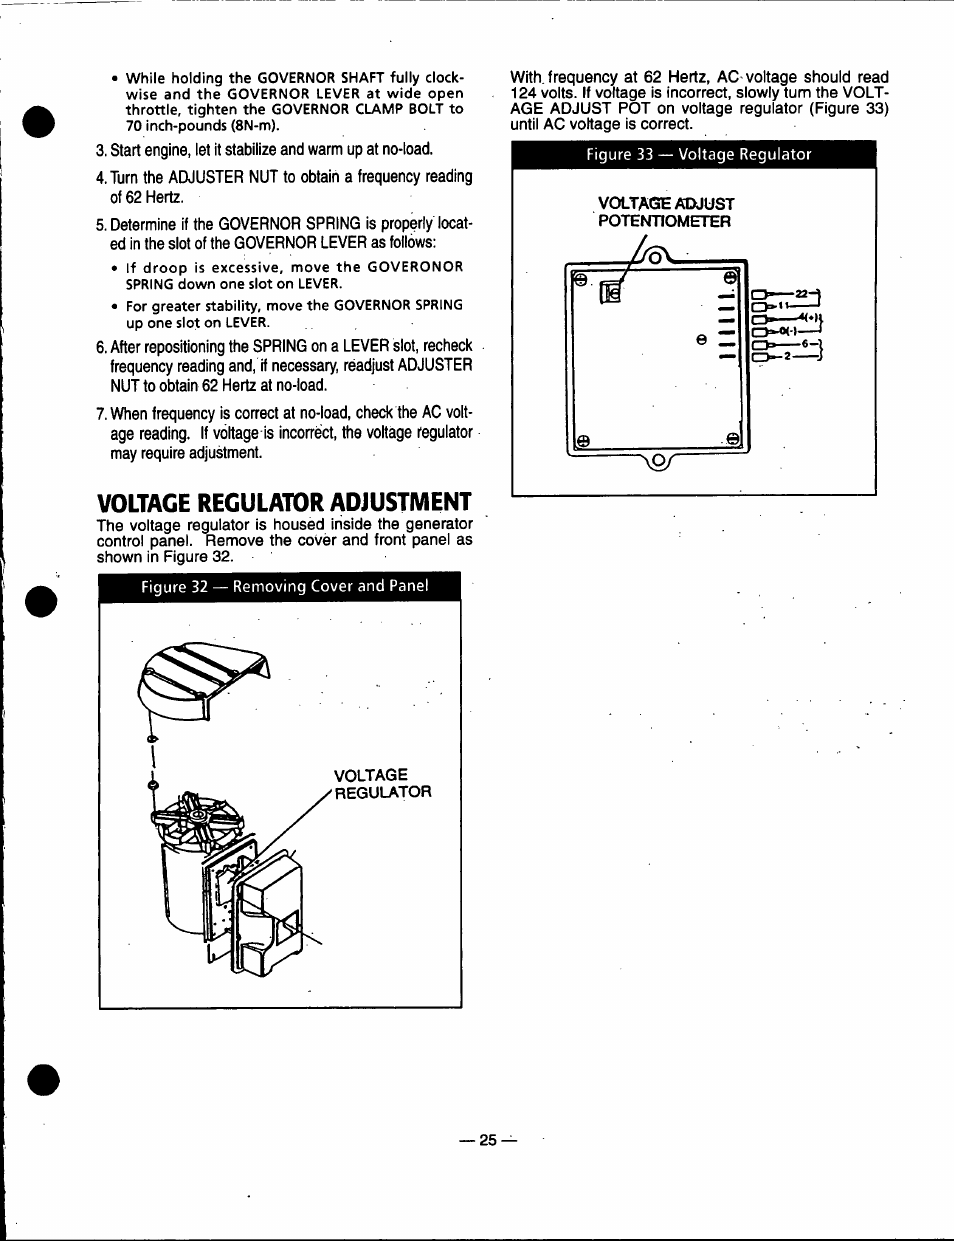 medium resolution of voltage regulator adjustment generac power systems 91355 user ford tractor wiring diagram generac regulator diagram